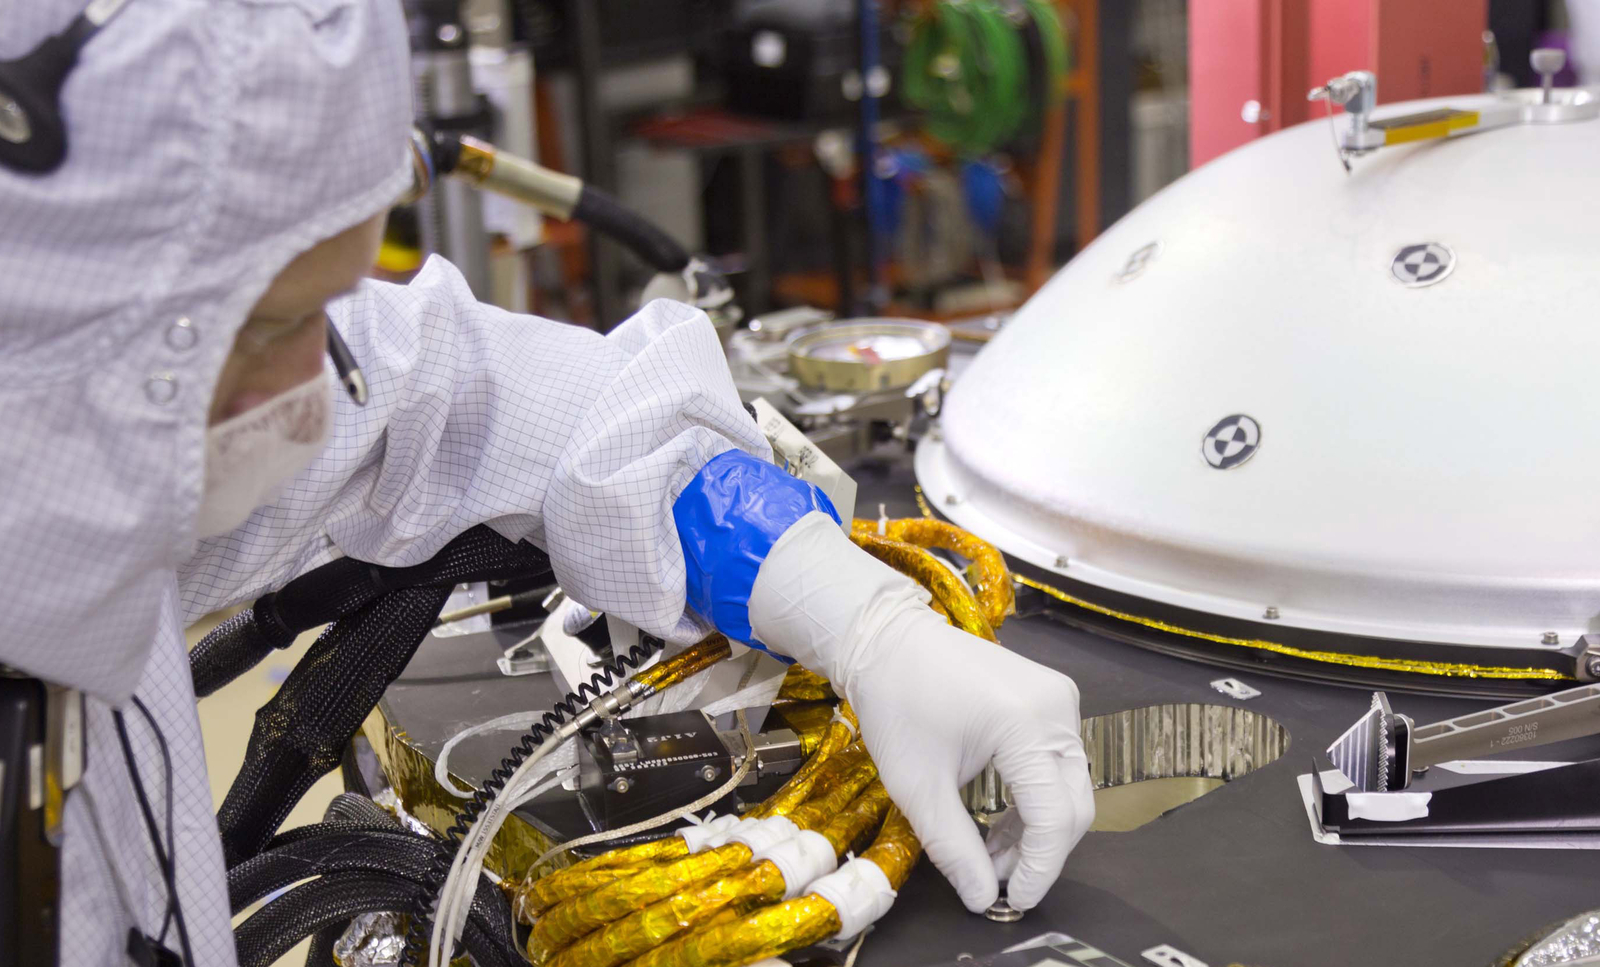 A spacecraft specialist in a clean room at Lockheed Martin Space Systems in Denver, where the InSight lander is being built, affixes a dime-size chip onto the lander deck in November 2015.